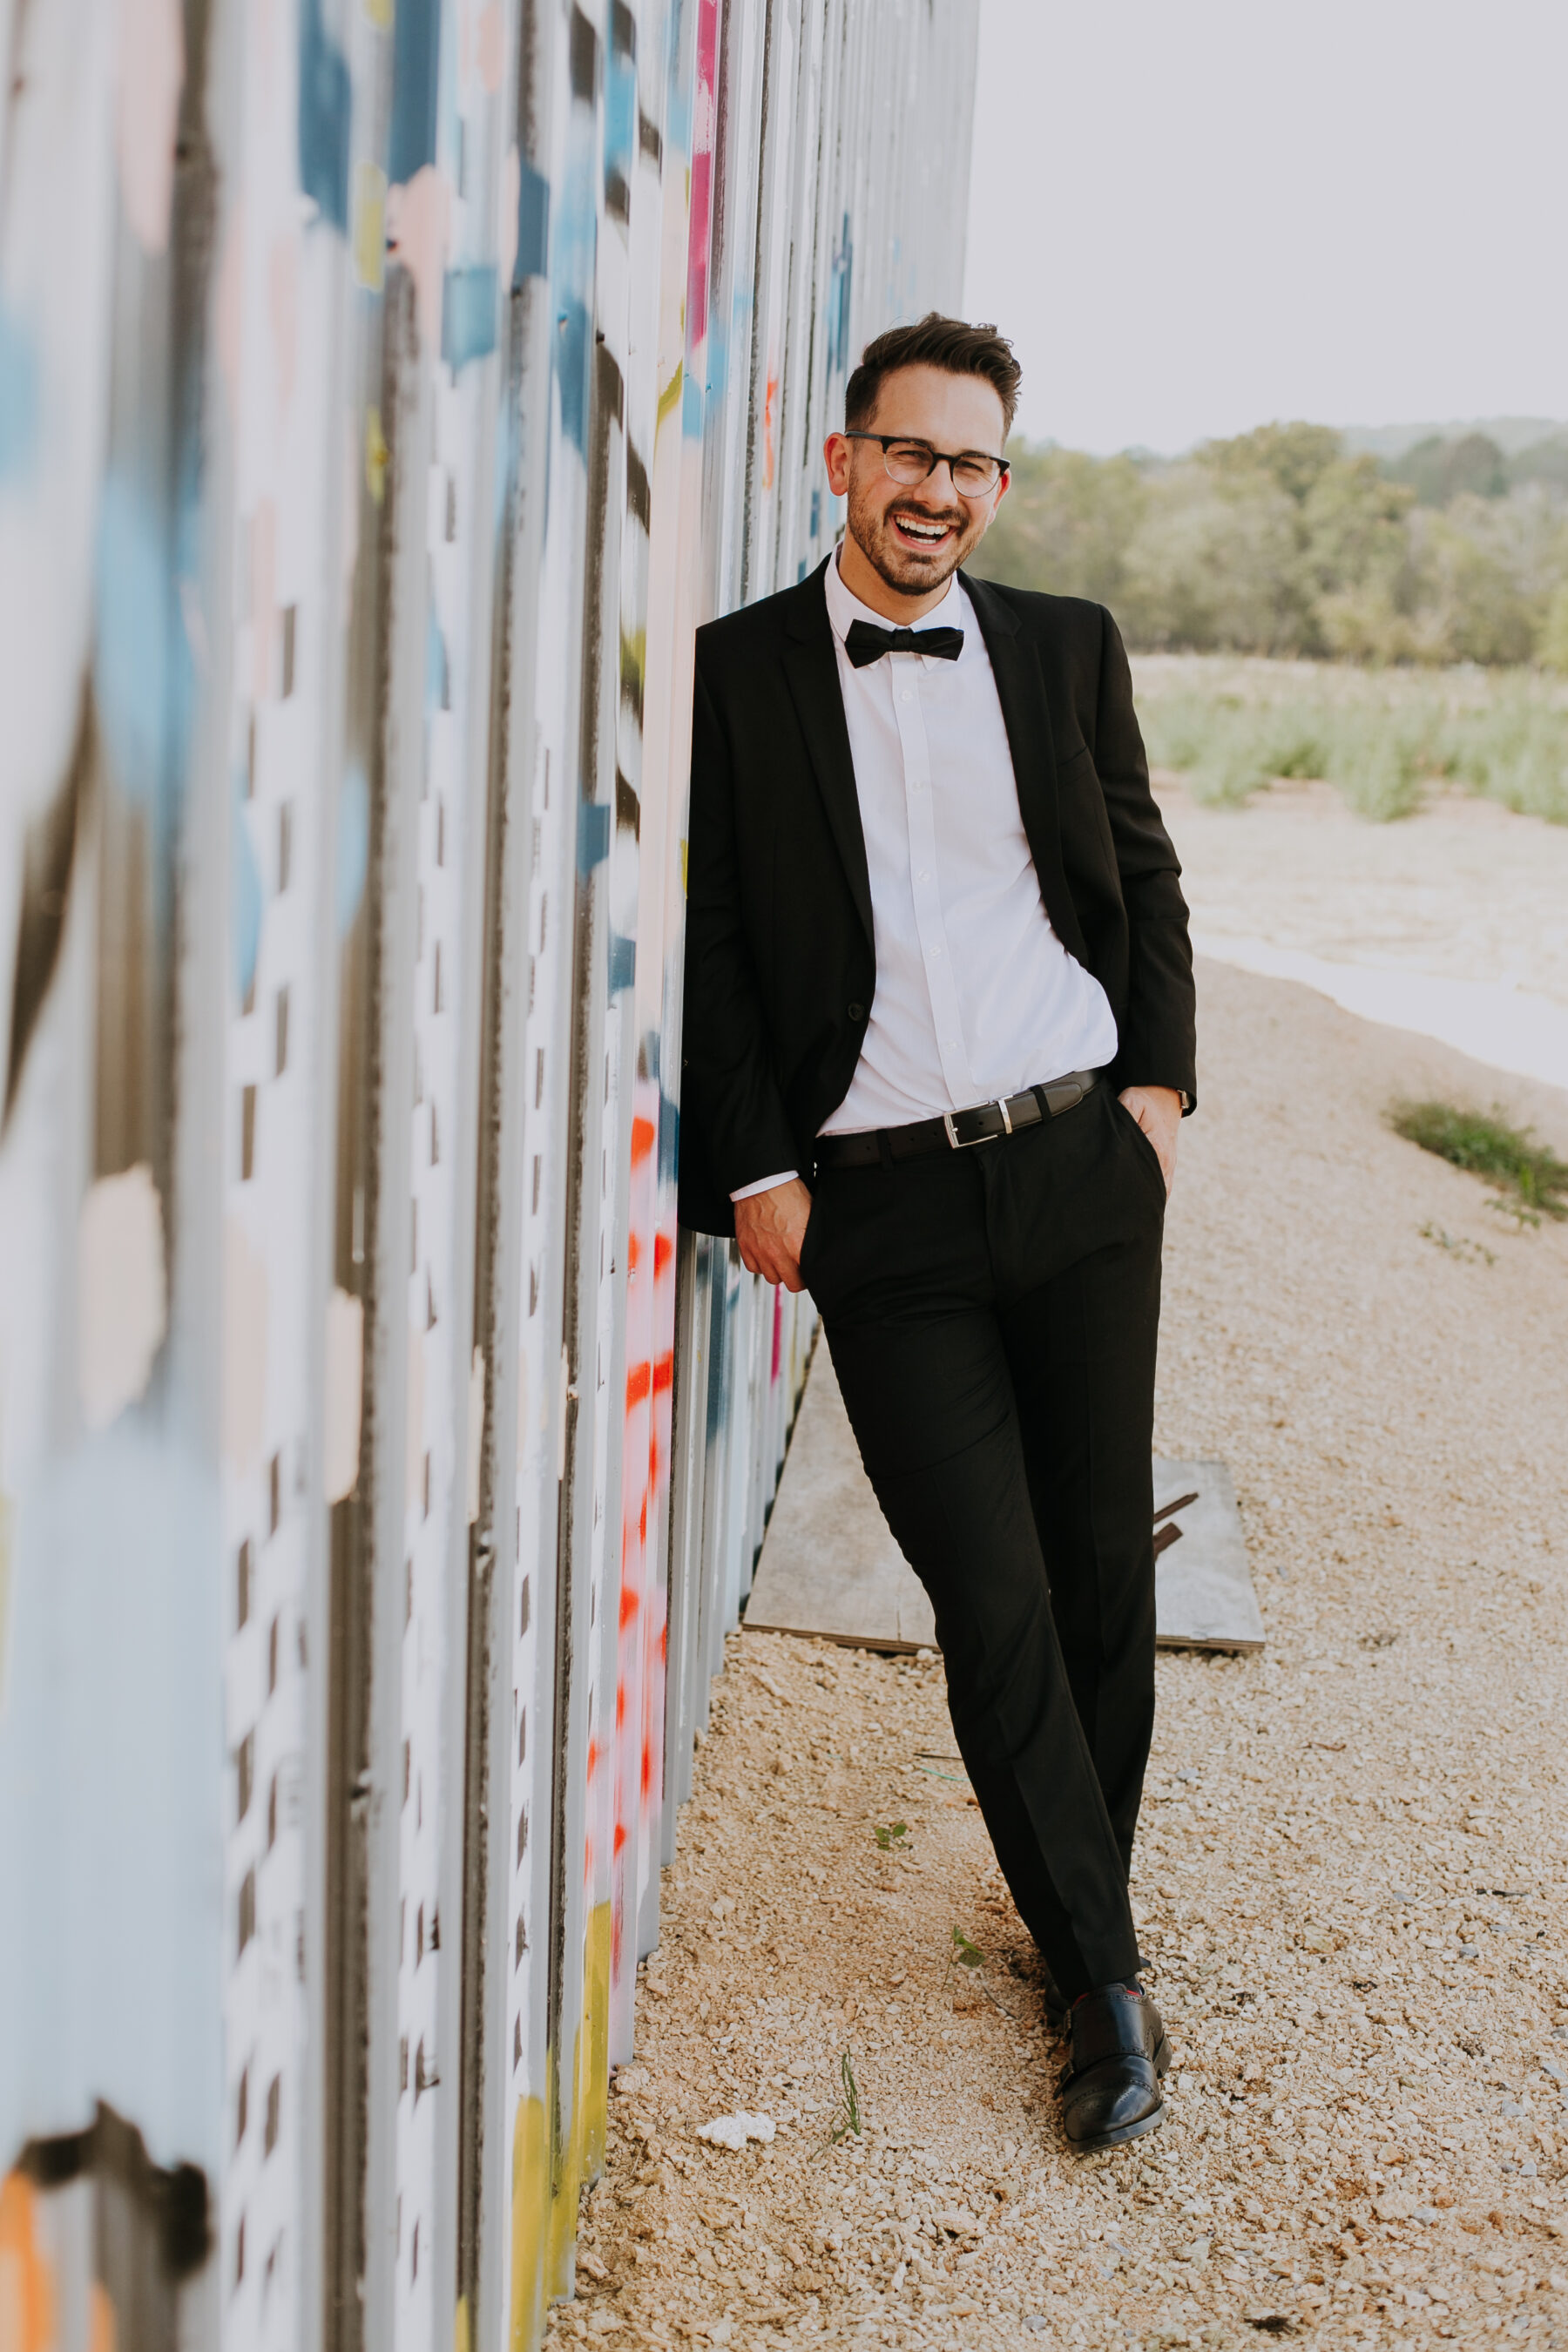 Classic black tuxedo: Nashville Wedding with Beautiful Views by Teale Photography featured on Nashville Bride Guide